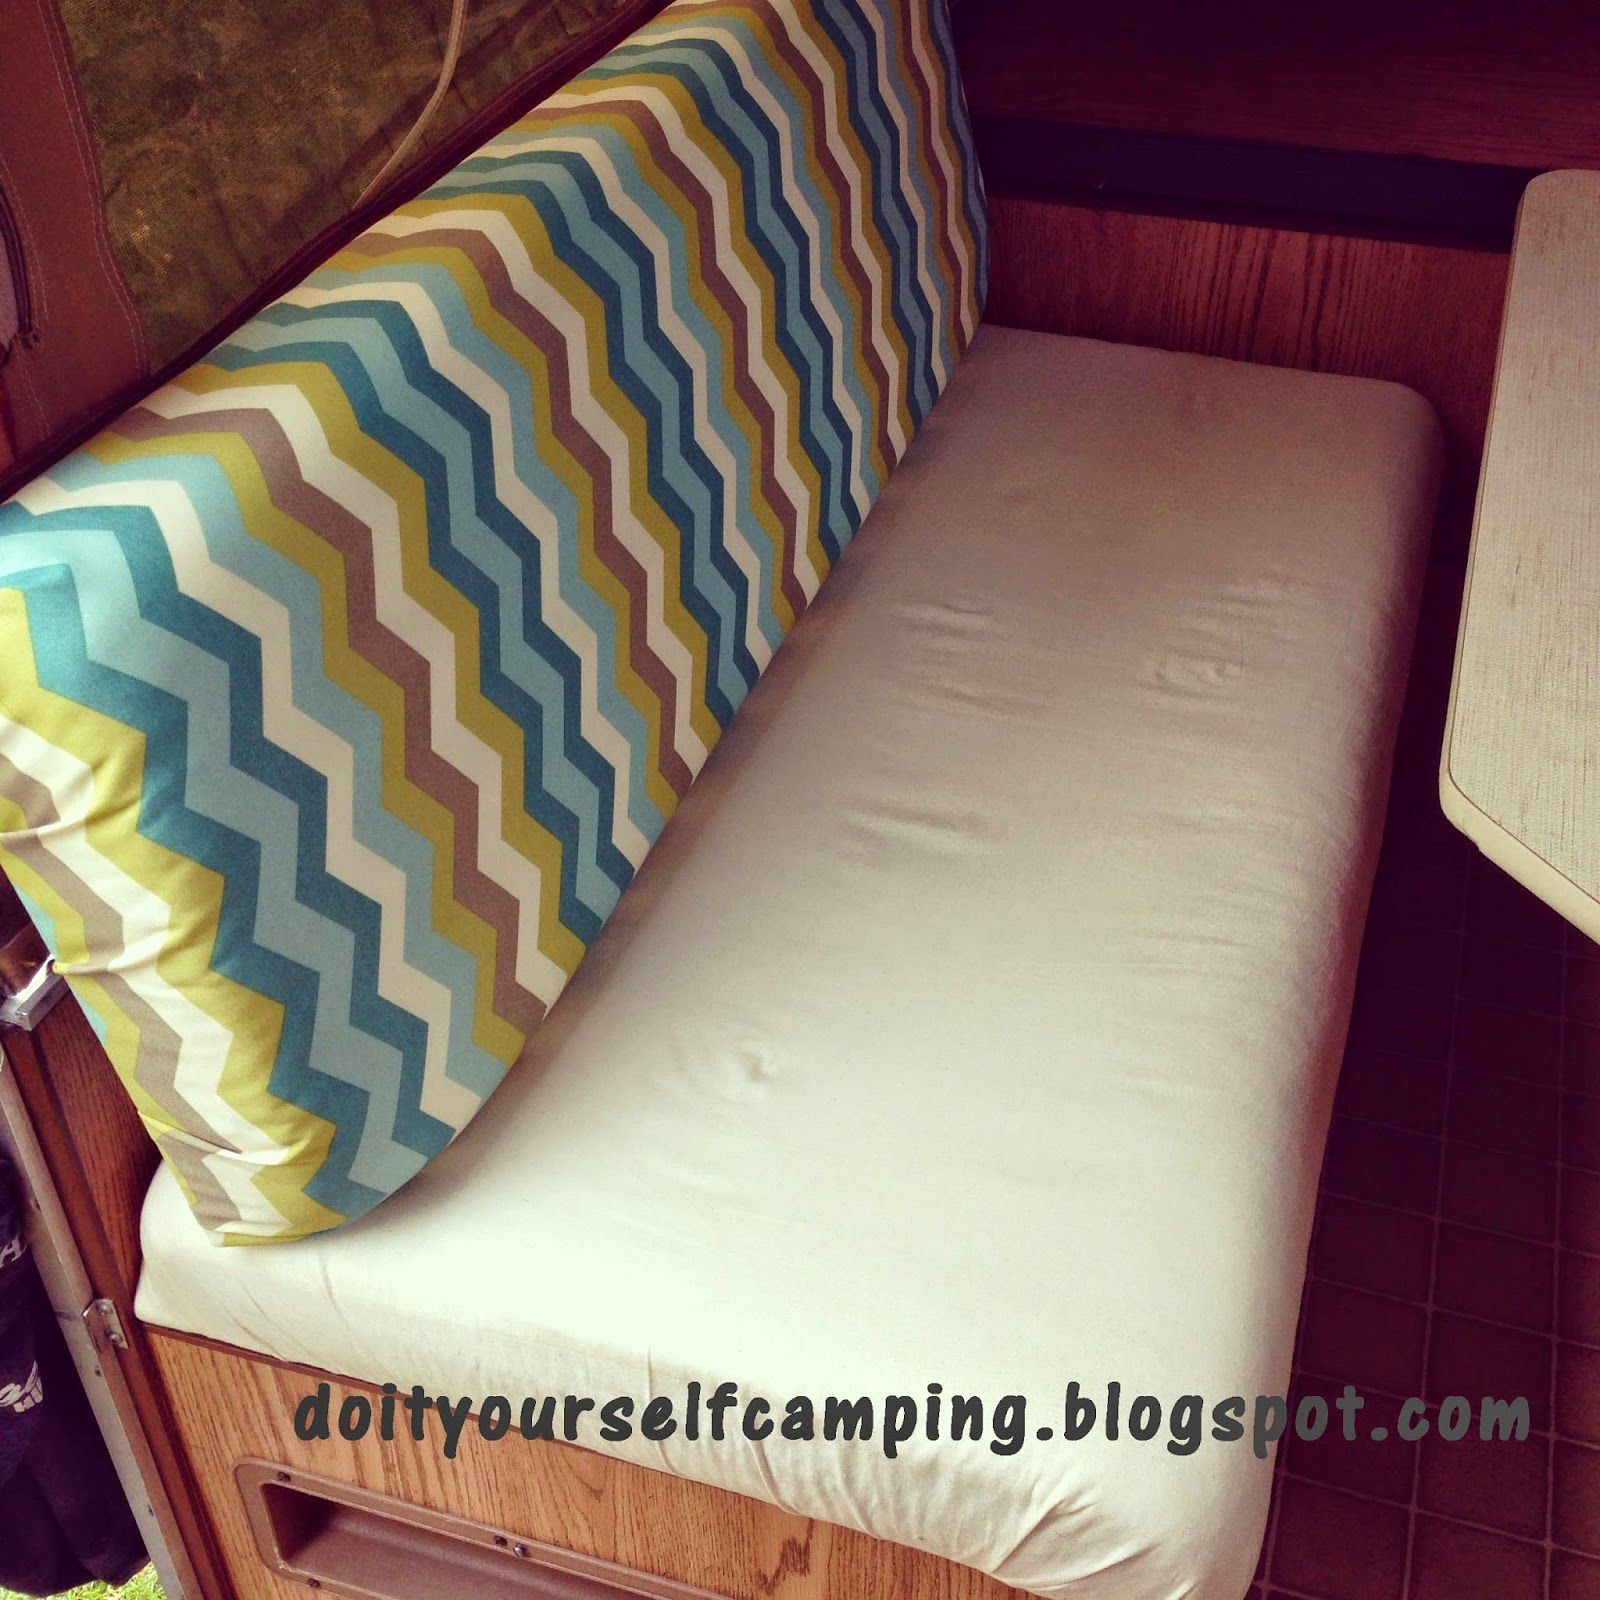 Do It Yourself Camping - Learn how to make fabulous redone cushions for your camper the cheapest and easiest way! You'll love it!! doityourselfcamping.blogspot.com